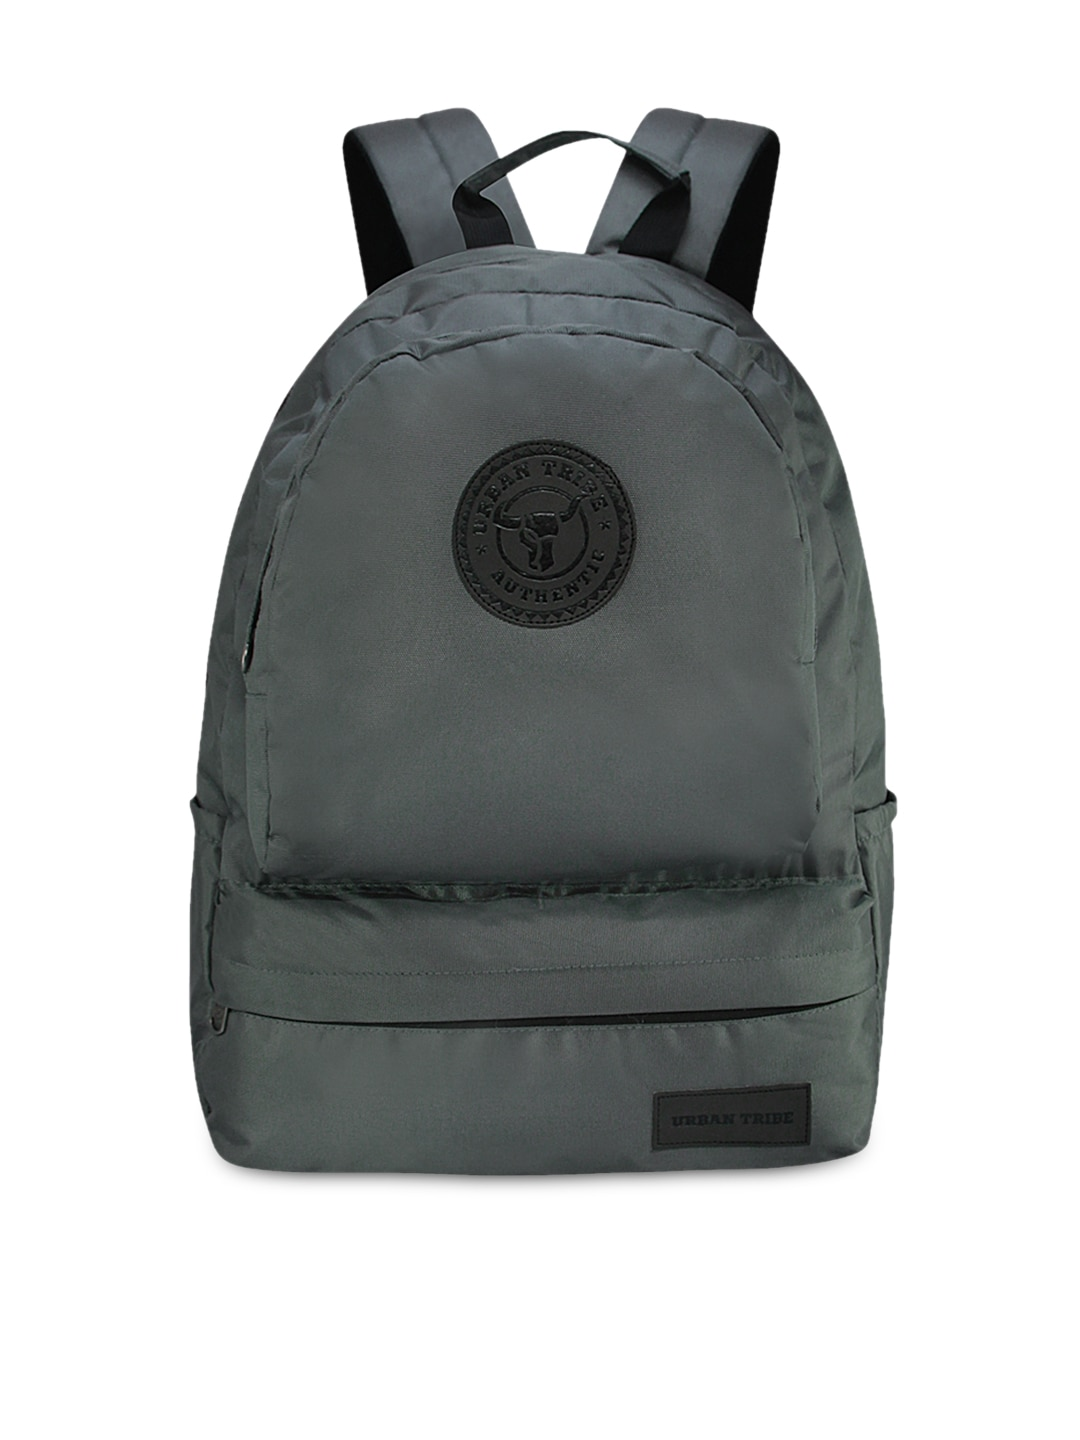 Backpack For Women - Buy Backpacks For Women Online  23e2356c60b2b